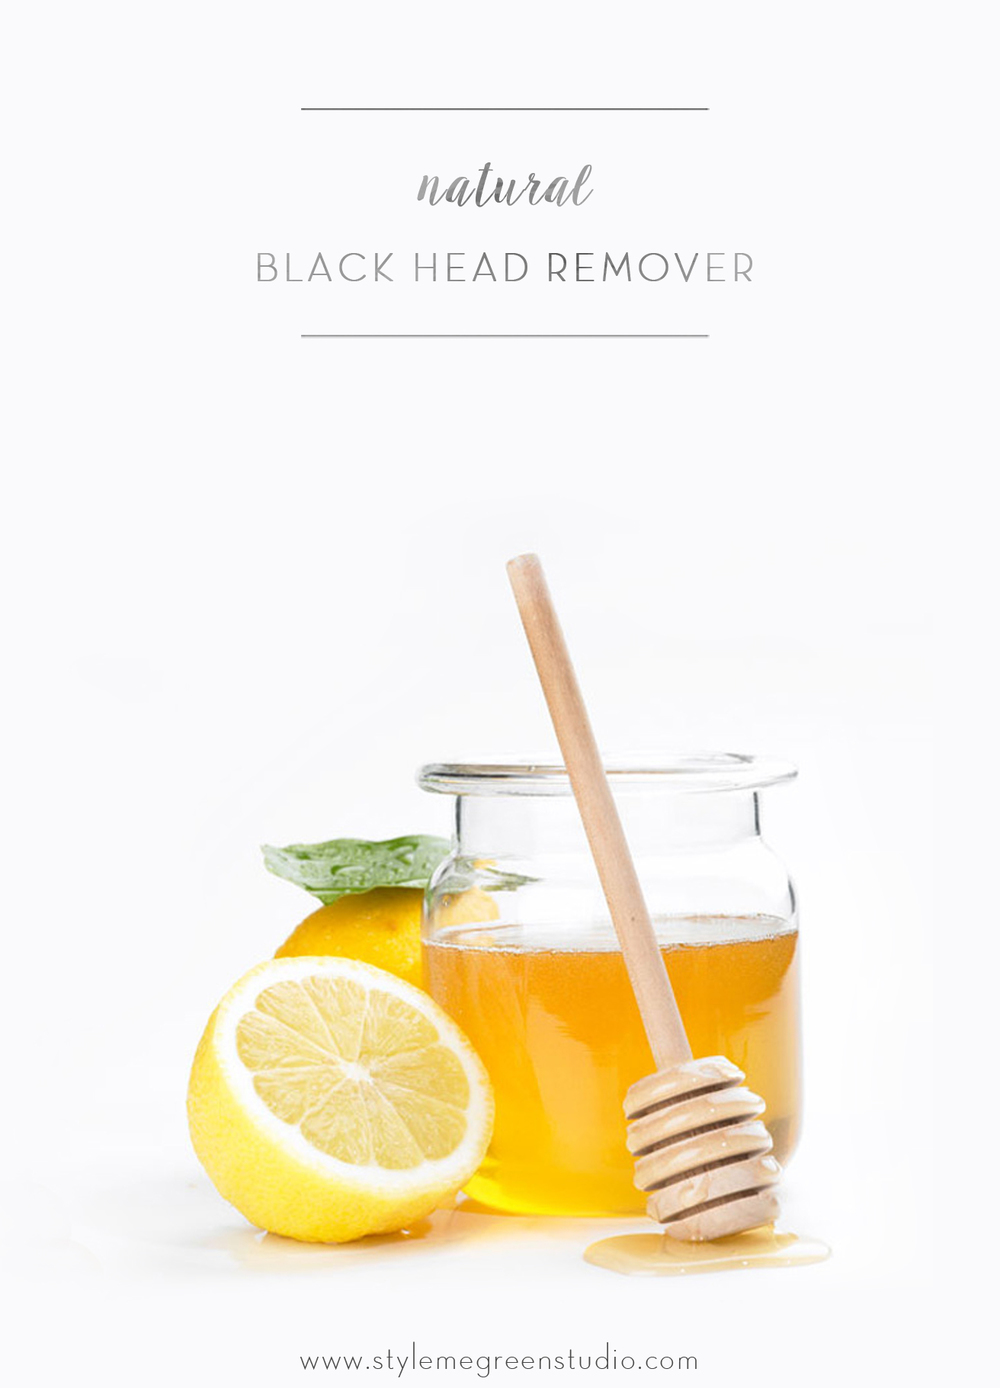 natural black head remover